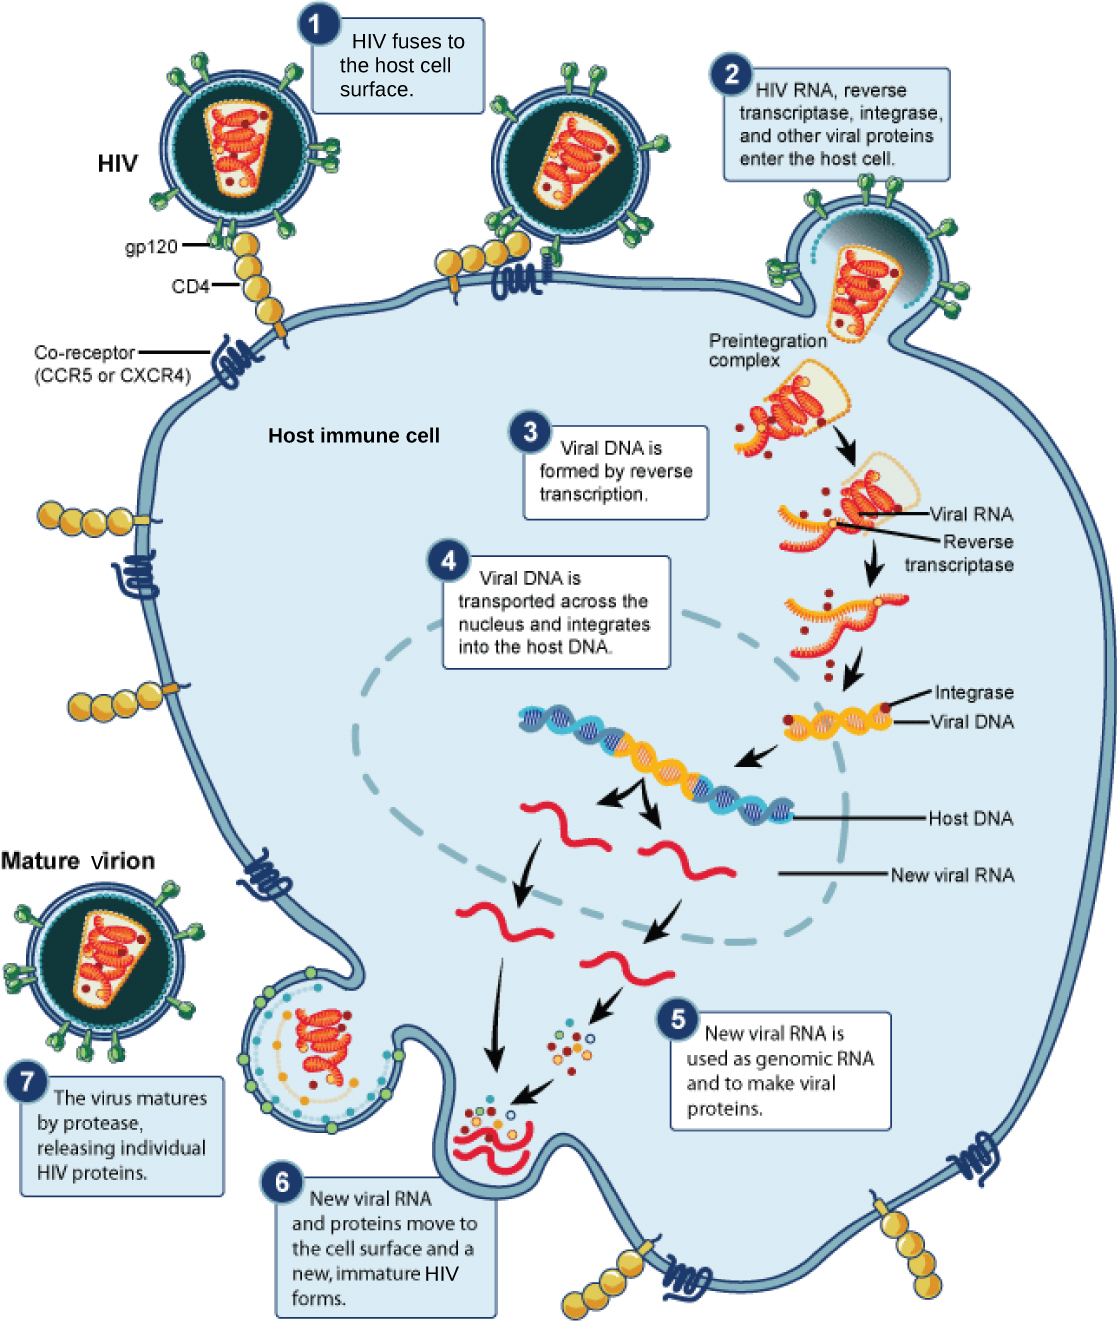 The illustration shows the steps in the HIV life cycle. In step 1, gp120 glycoproteins in the viral envelope attach to a CD4 receptor on the host cell membrane. The glycoproteins then attached to a co-receptor, CCR5 or CXCR4, and the viral envelope fuses with the cell membrane. HIV RNA, reverse transcriptase, and other viral proteins are released into the host cell. Viral DNA is formed from RNA by reverse transcriptase. Viral DNA is then transported across the nuclear membrane, where it integrates into the host DNA. New viral RNA is made; it is used as genomic RNA and to make viral proteins. New viral RNA and proteins move to the cell surface and a new, immature HIV forms. The virus matures when a protease releases individual HIV proteins.